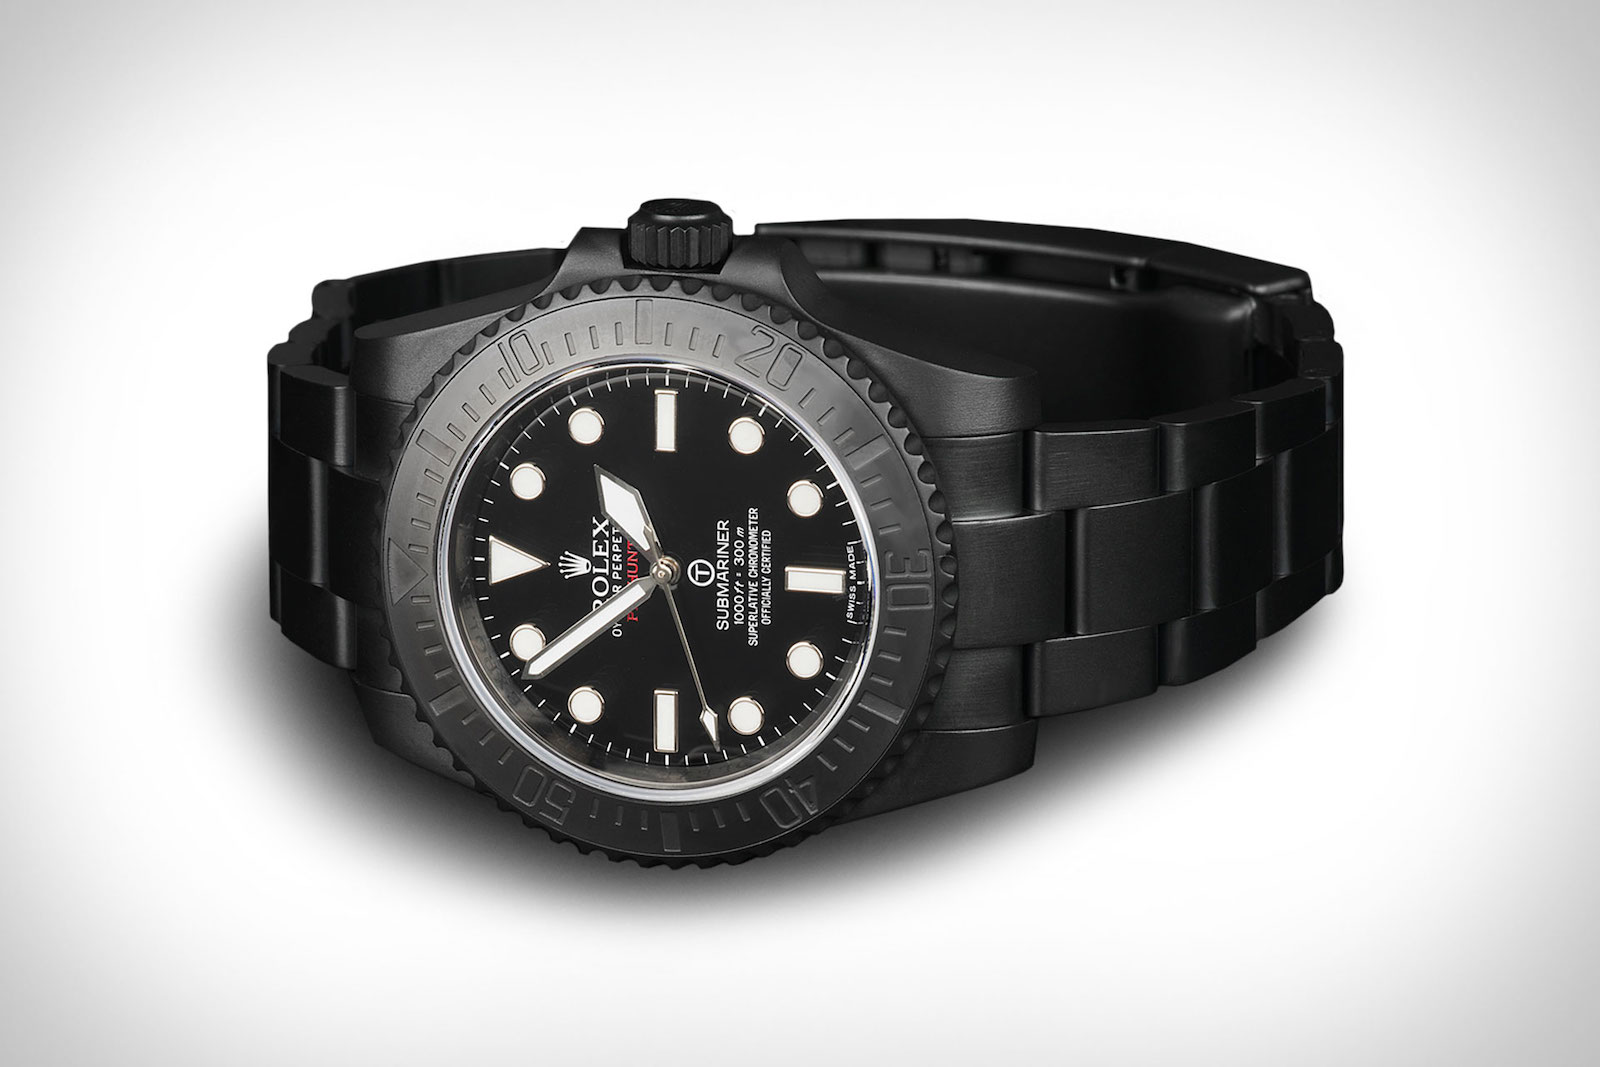 Limited to Only 100 Pieces: The Pro Hunter Rolex Submariner Military Watch 2